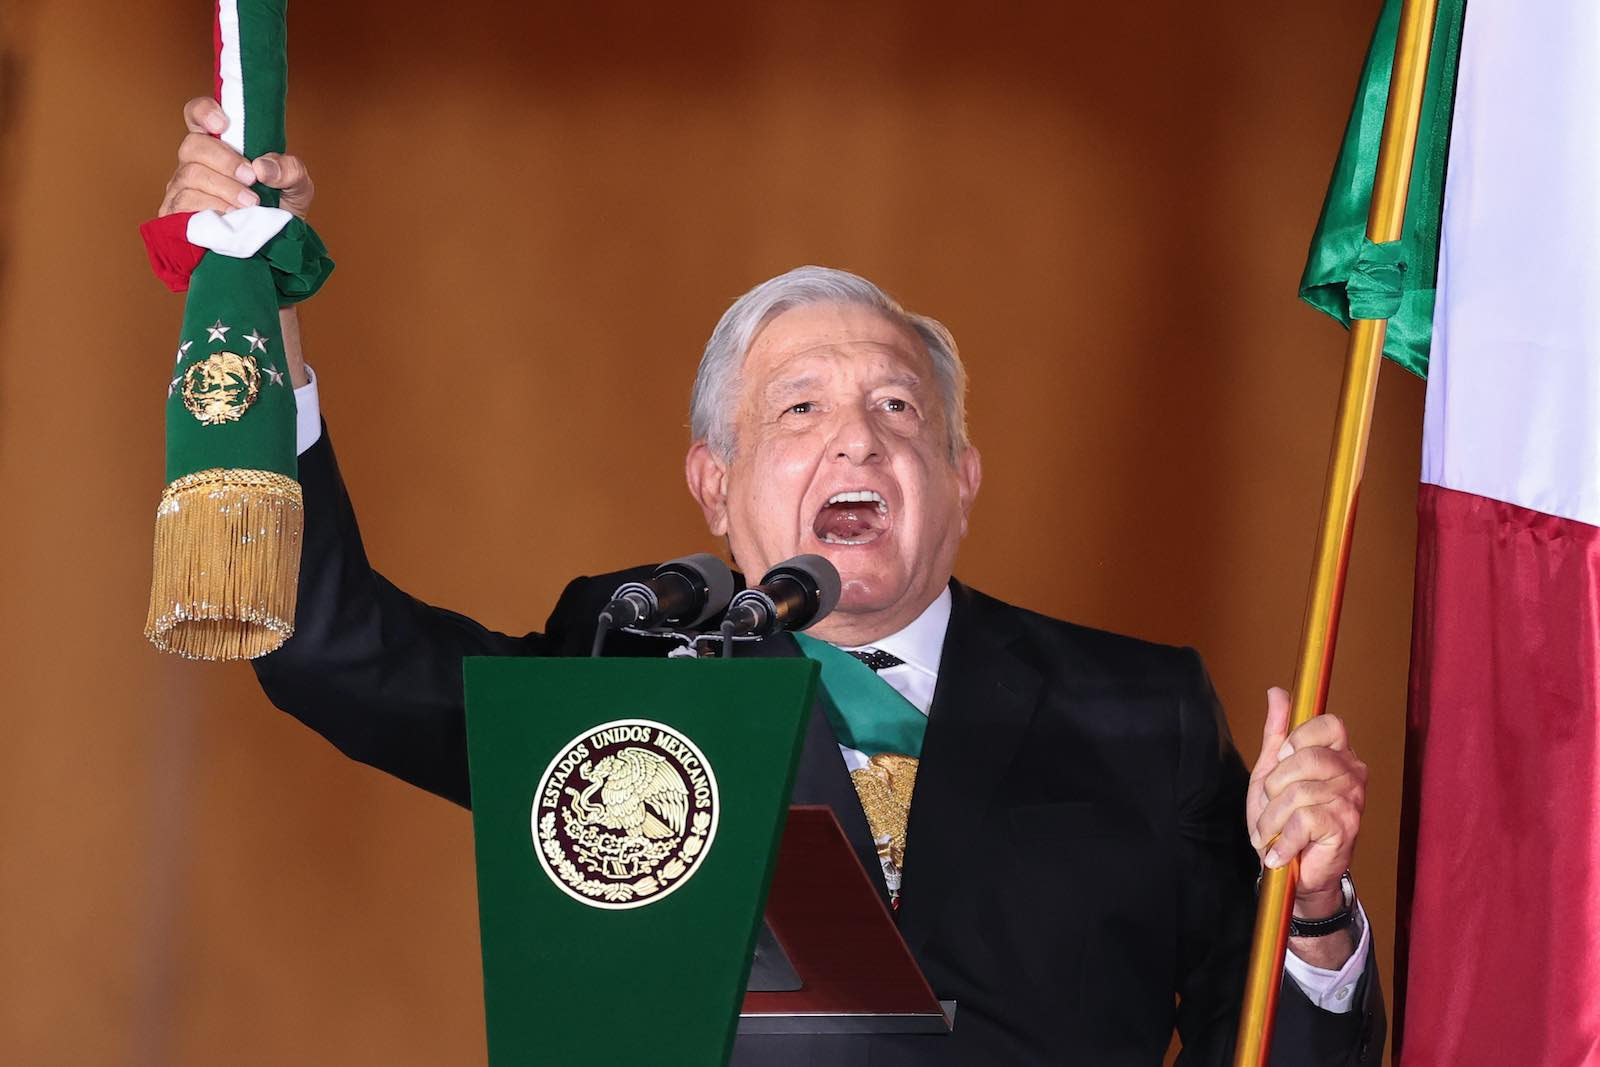 """Mexican President Andrés Manuel López Obrador delivers the """"Cry of Dolores"""" to kick off Independence Day celebrations at the National Palace in Mexico City, 15 September 2020 (Hector Vivas/Getty Images)"""